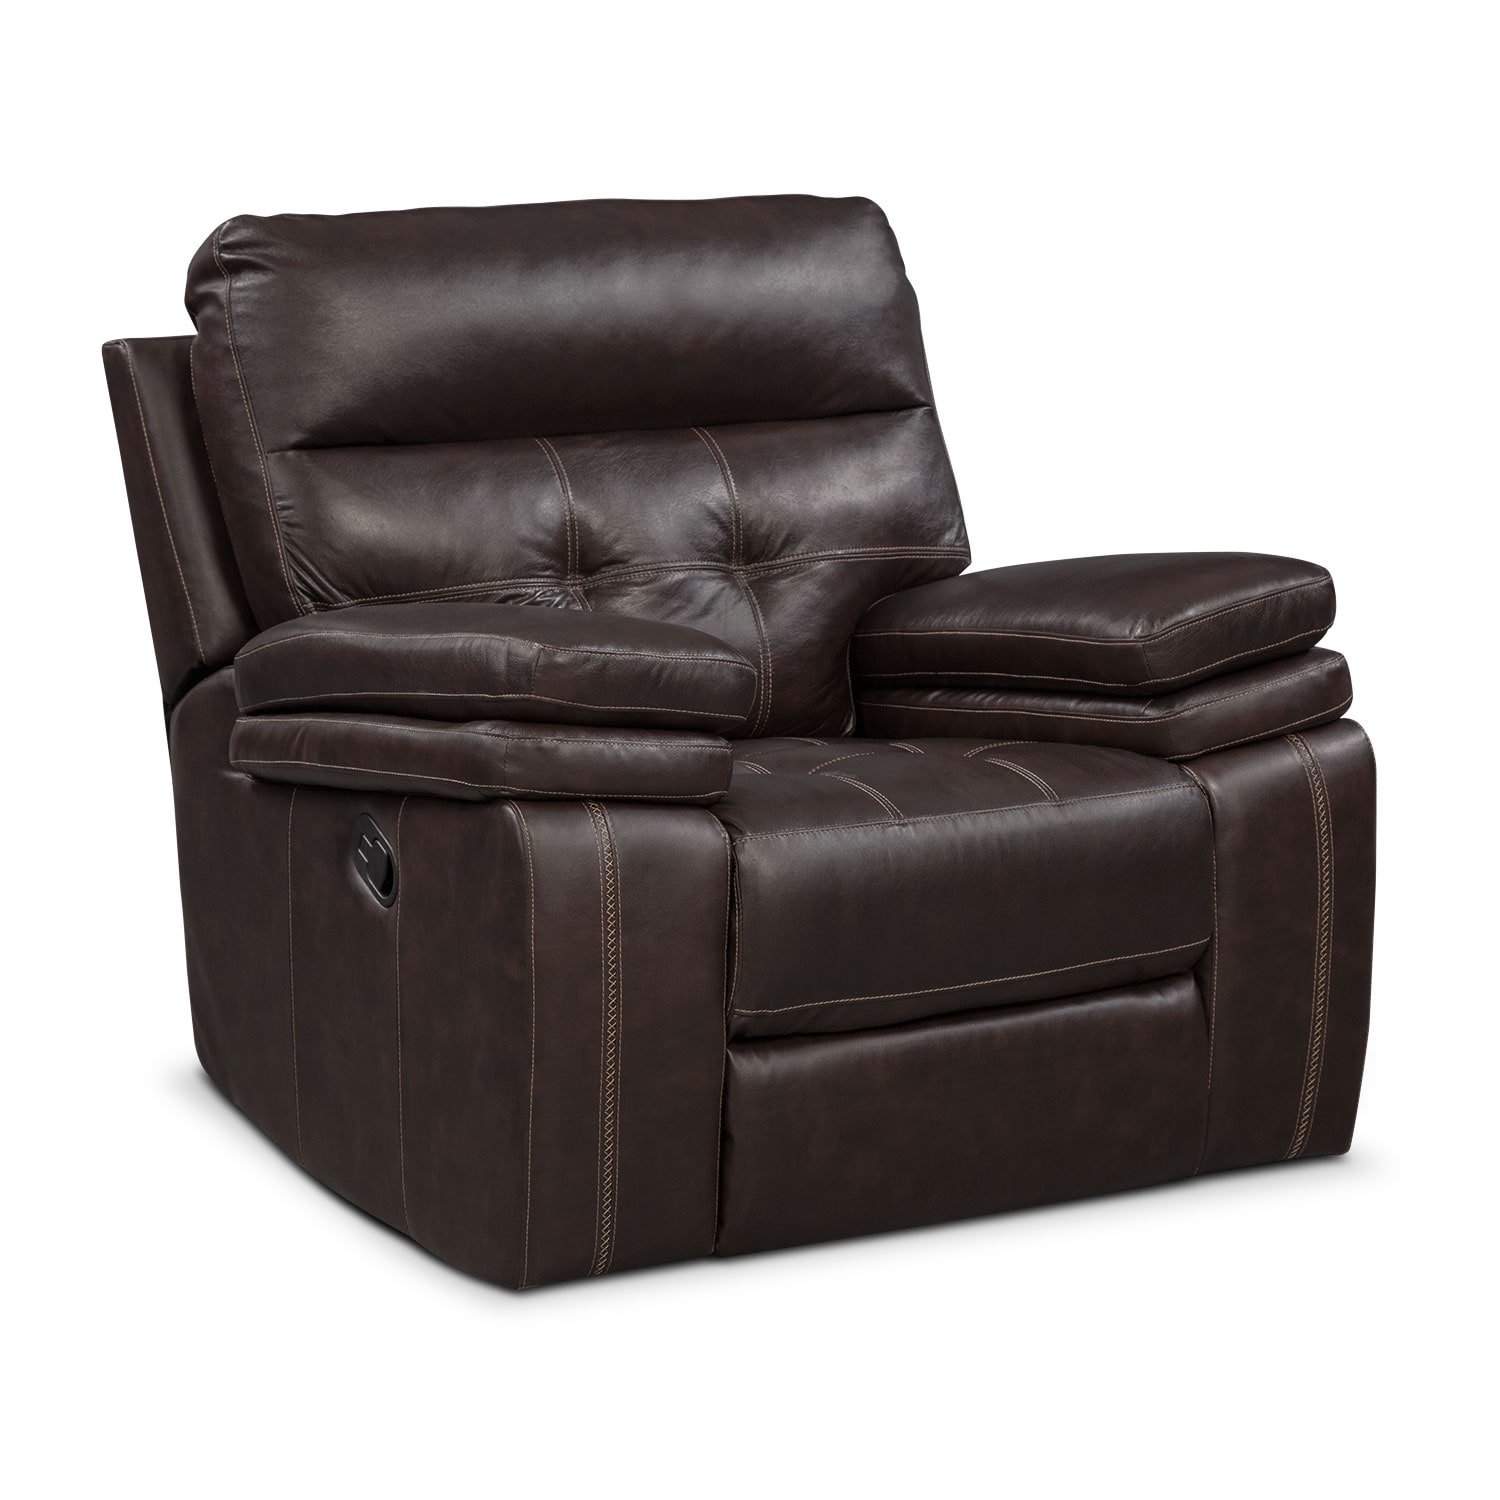 Brisco Manual Recliner Brown Value City Furniture And